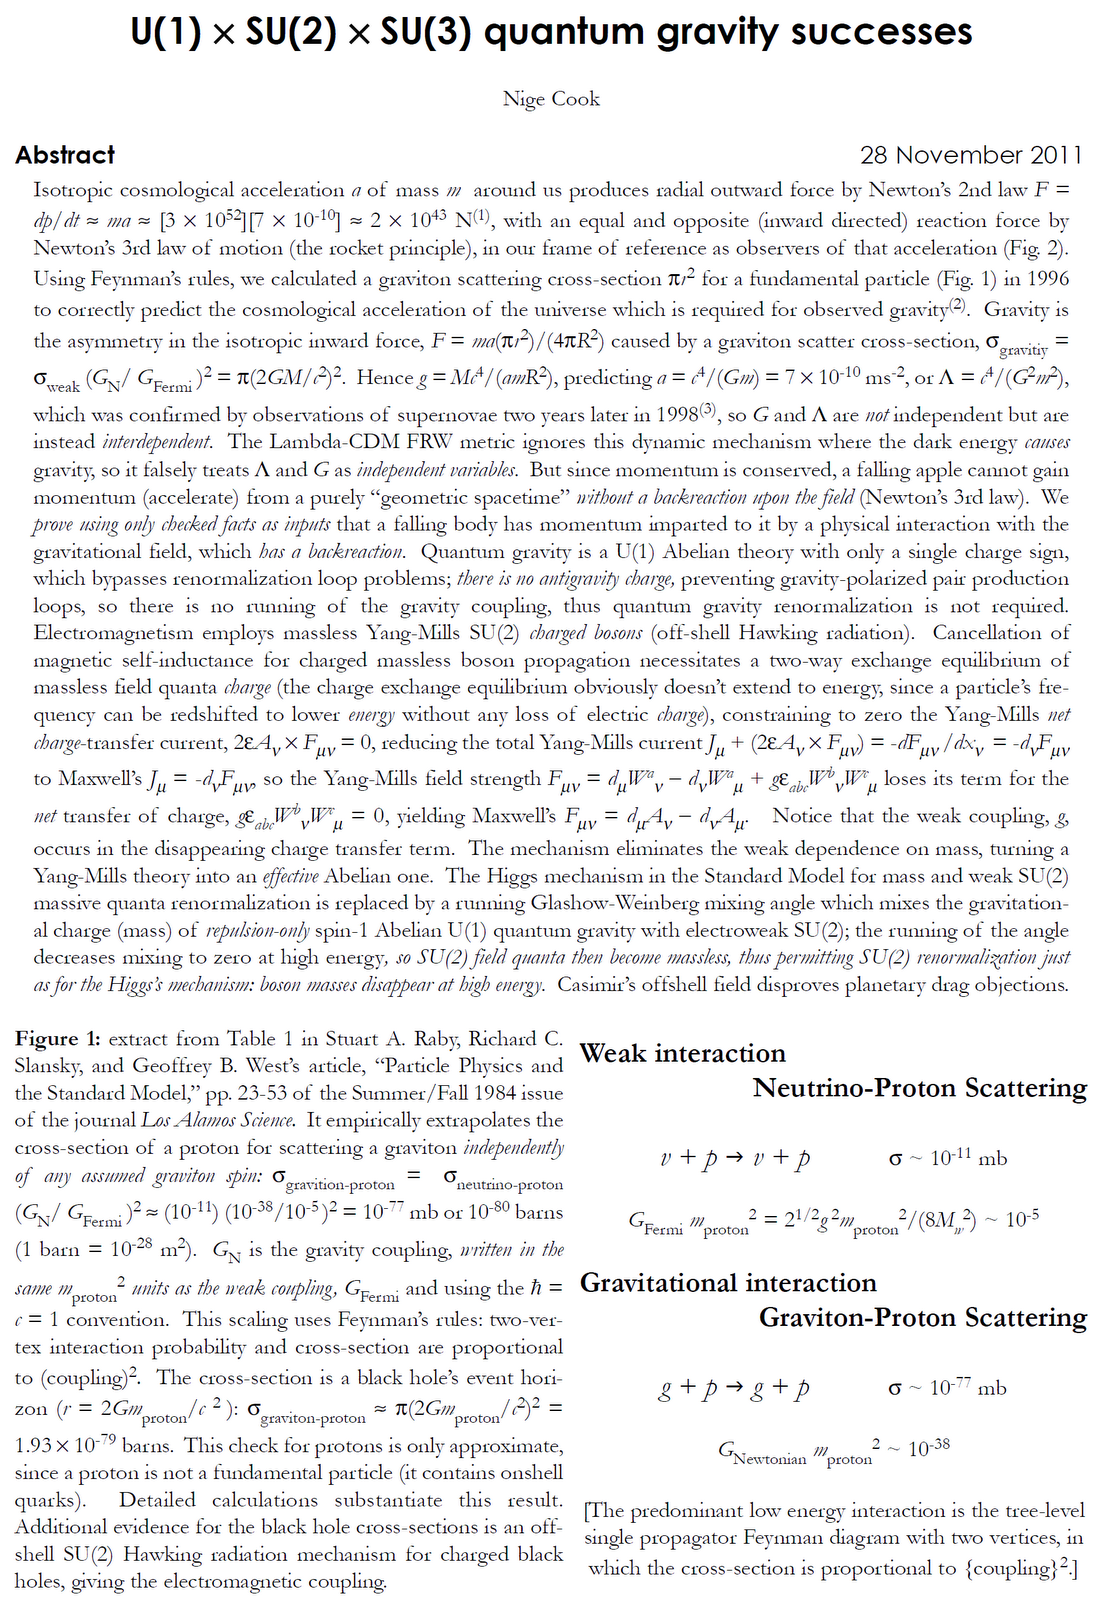 quantum theory research paper Quantum mechanics as quantum information (and only a little more) christopher a fuchs computing science research center bell labs, lucent technologies.